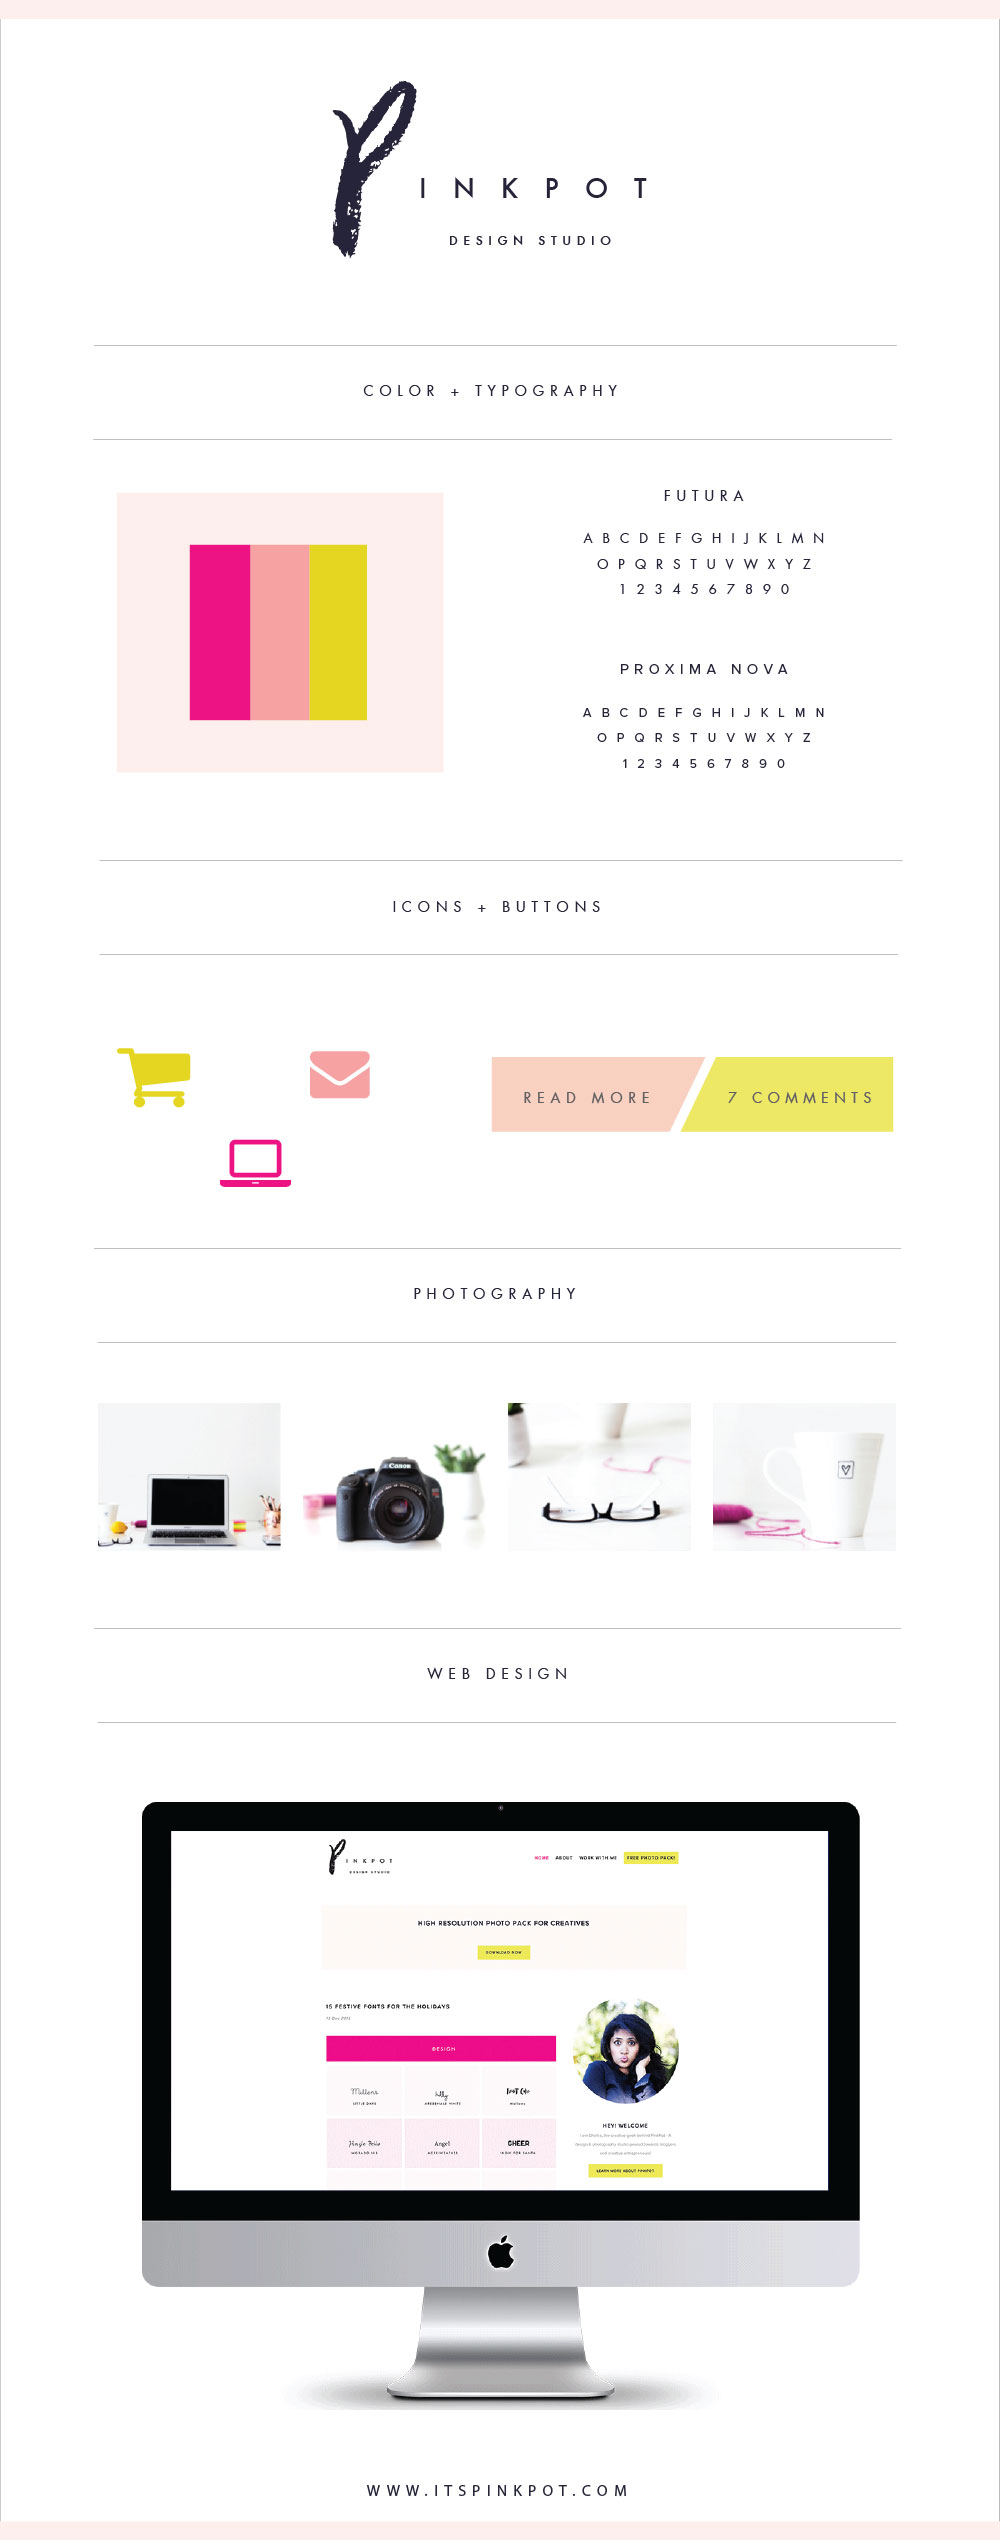 Complete step by step process of the branding + design for my brand - PinkPot